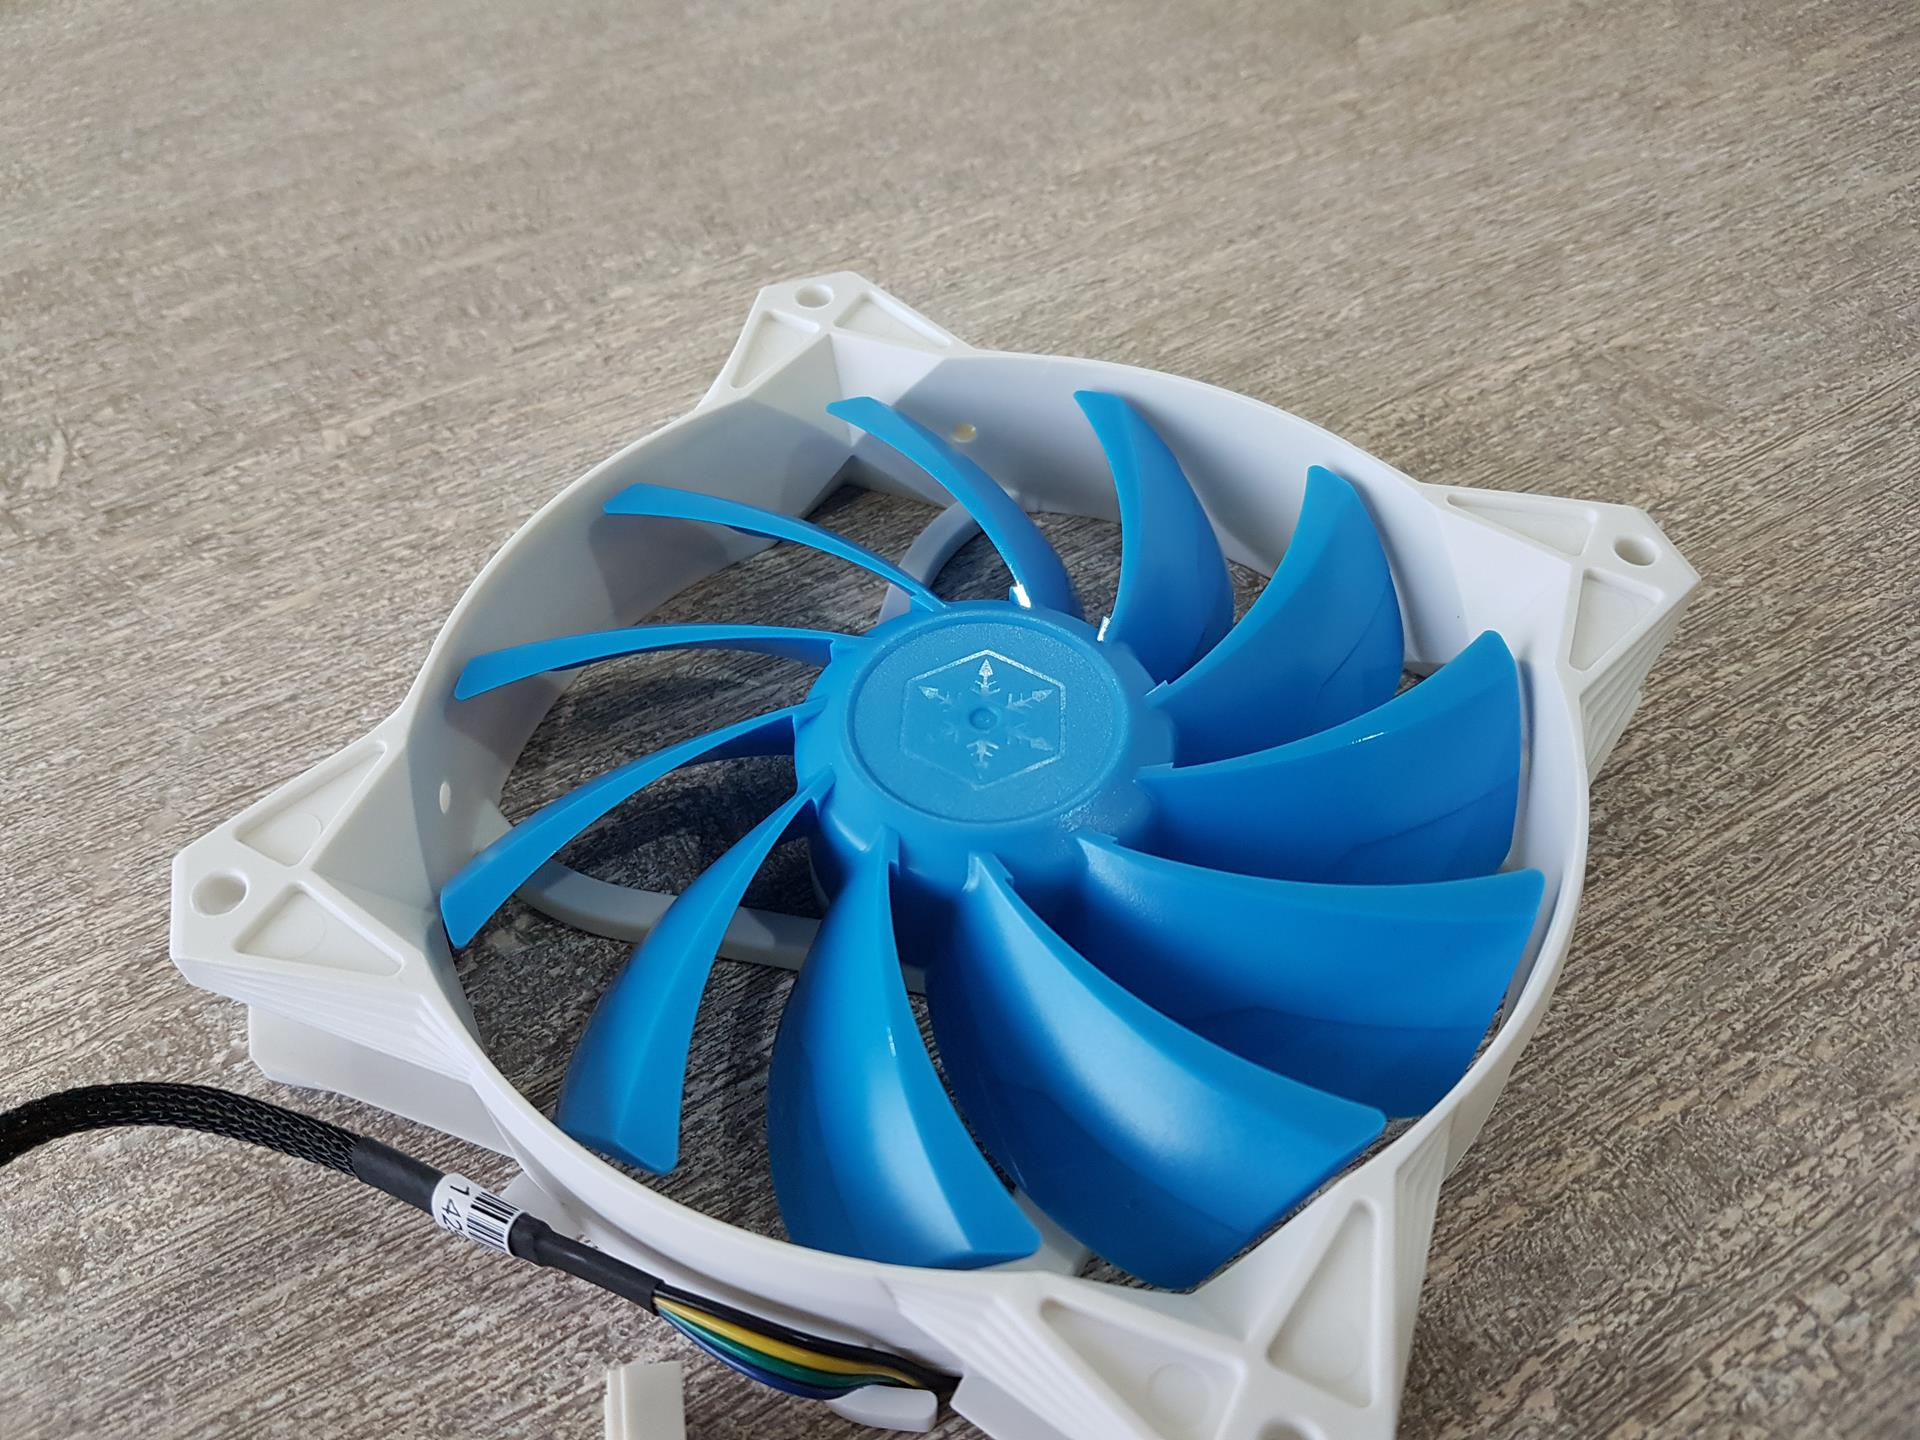 SilverStone SST-FQ122 Ultra-Quiet PWM 120mm Fans Review